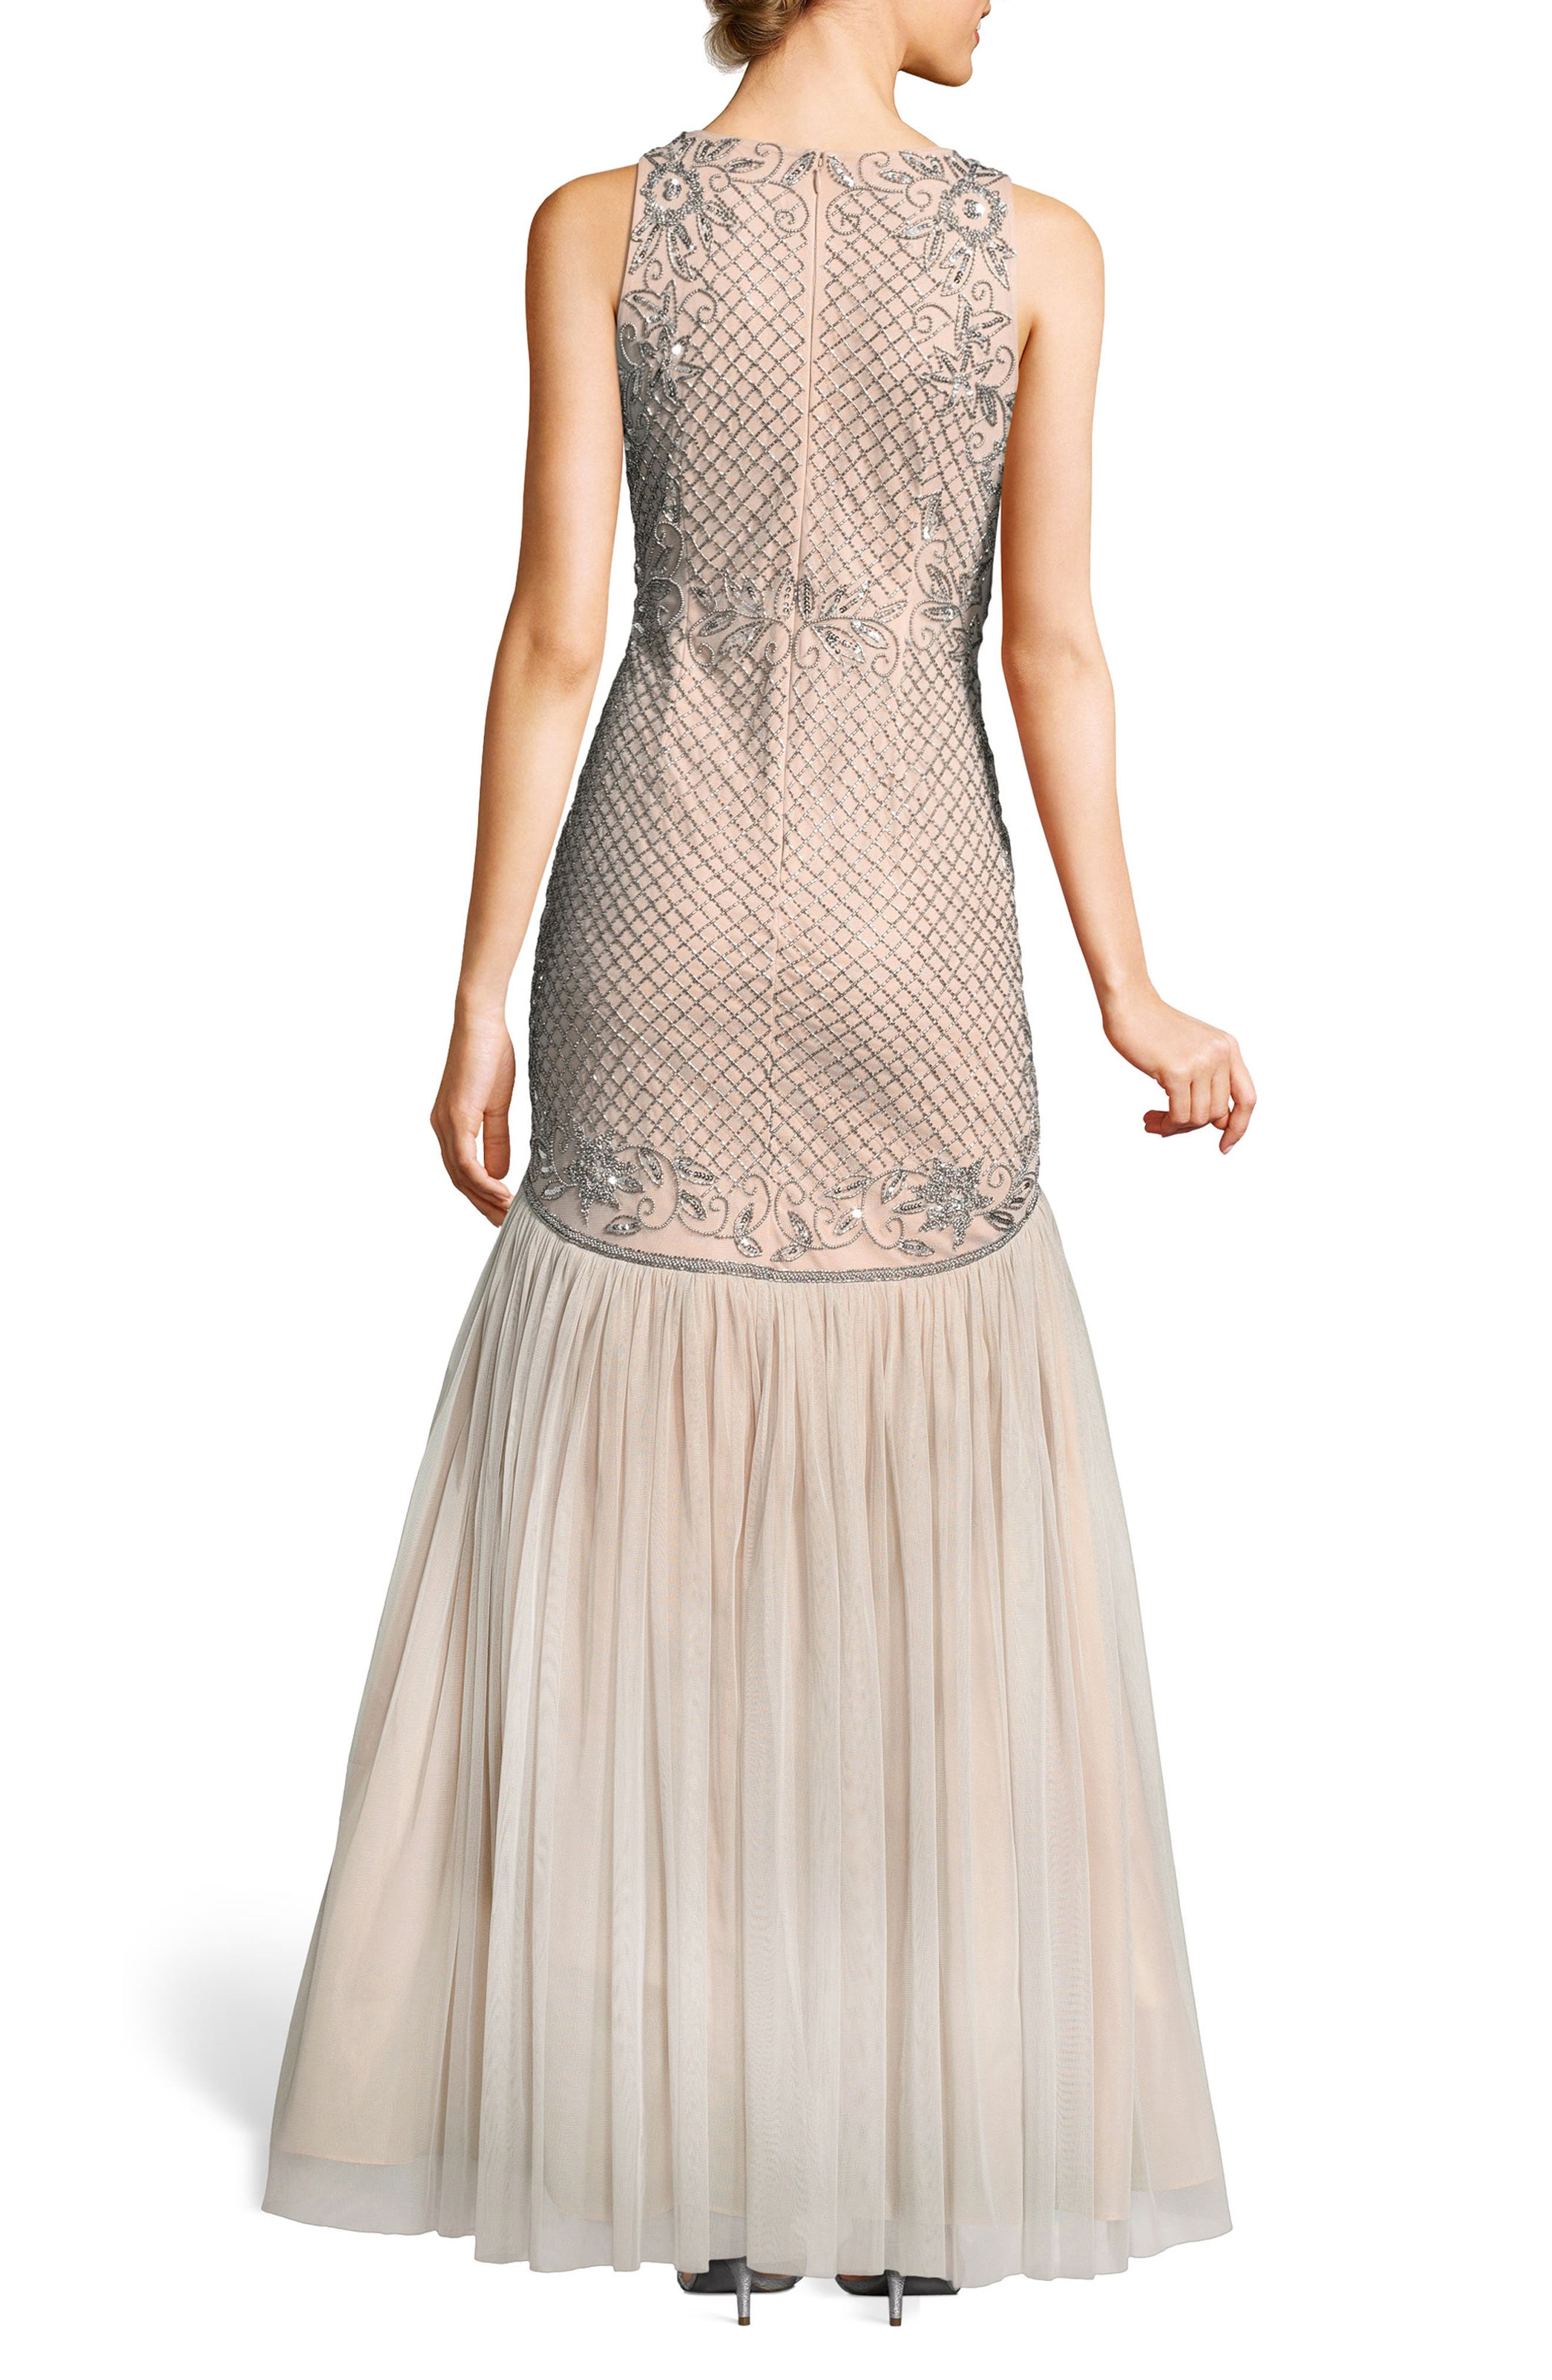 Beaded Tulle Trumpet Gown,                             Alternate thumbnail 2, color,                             Silver/ Nude